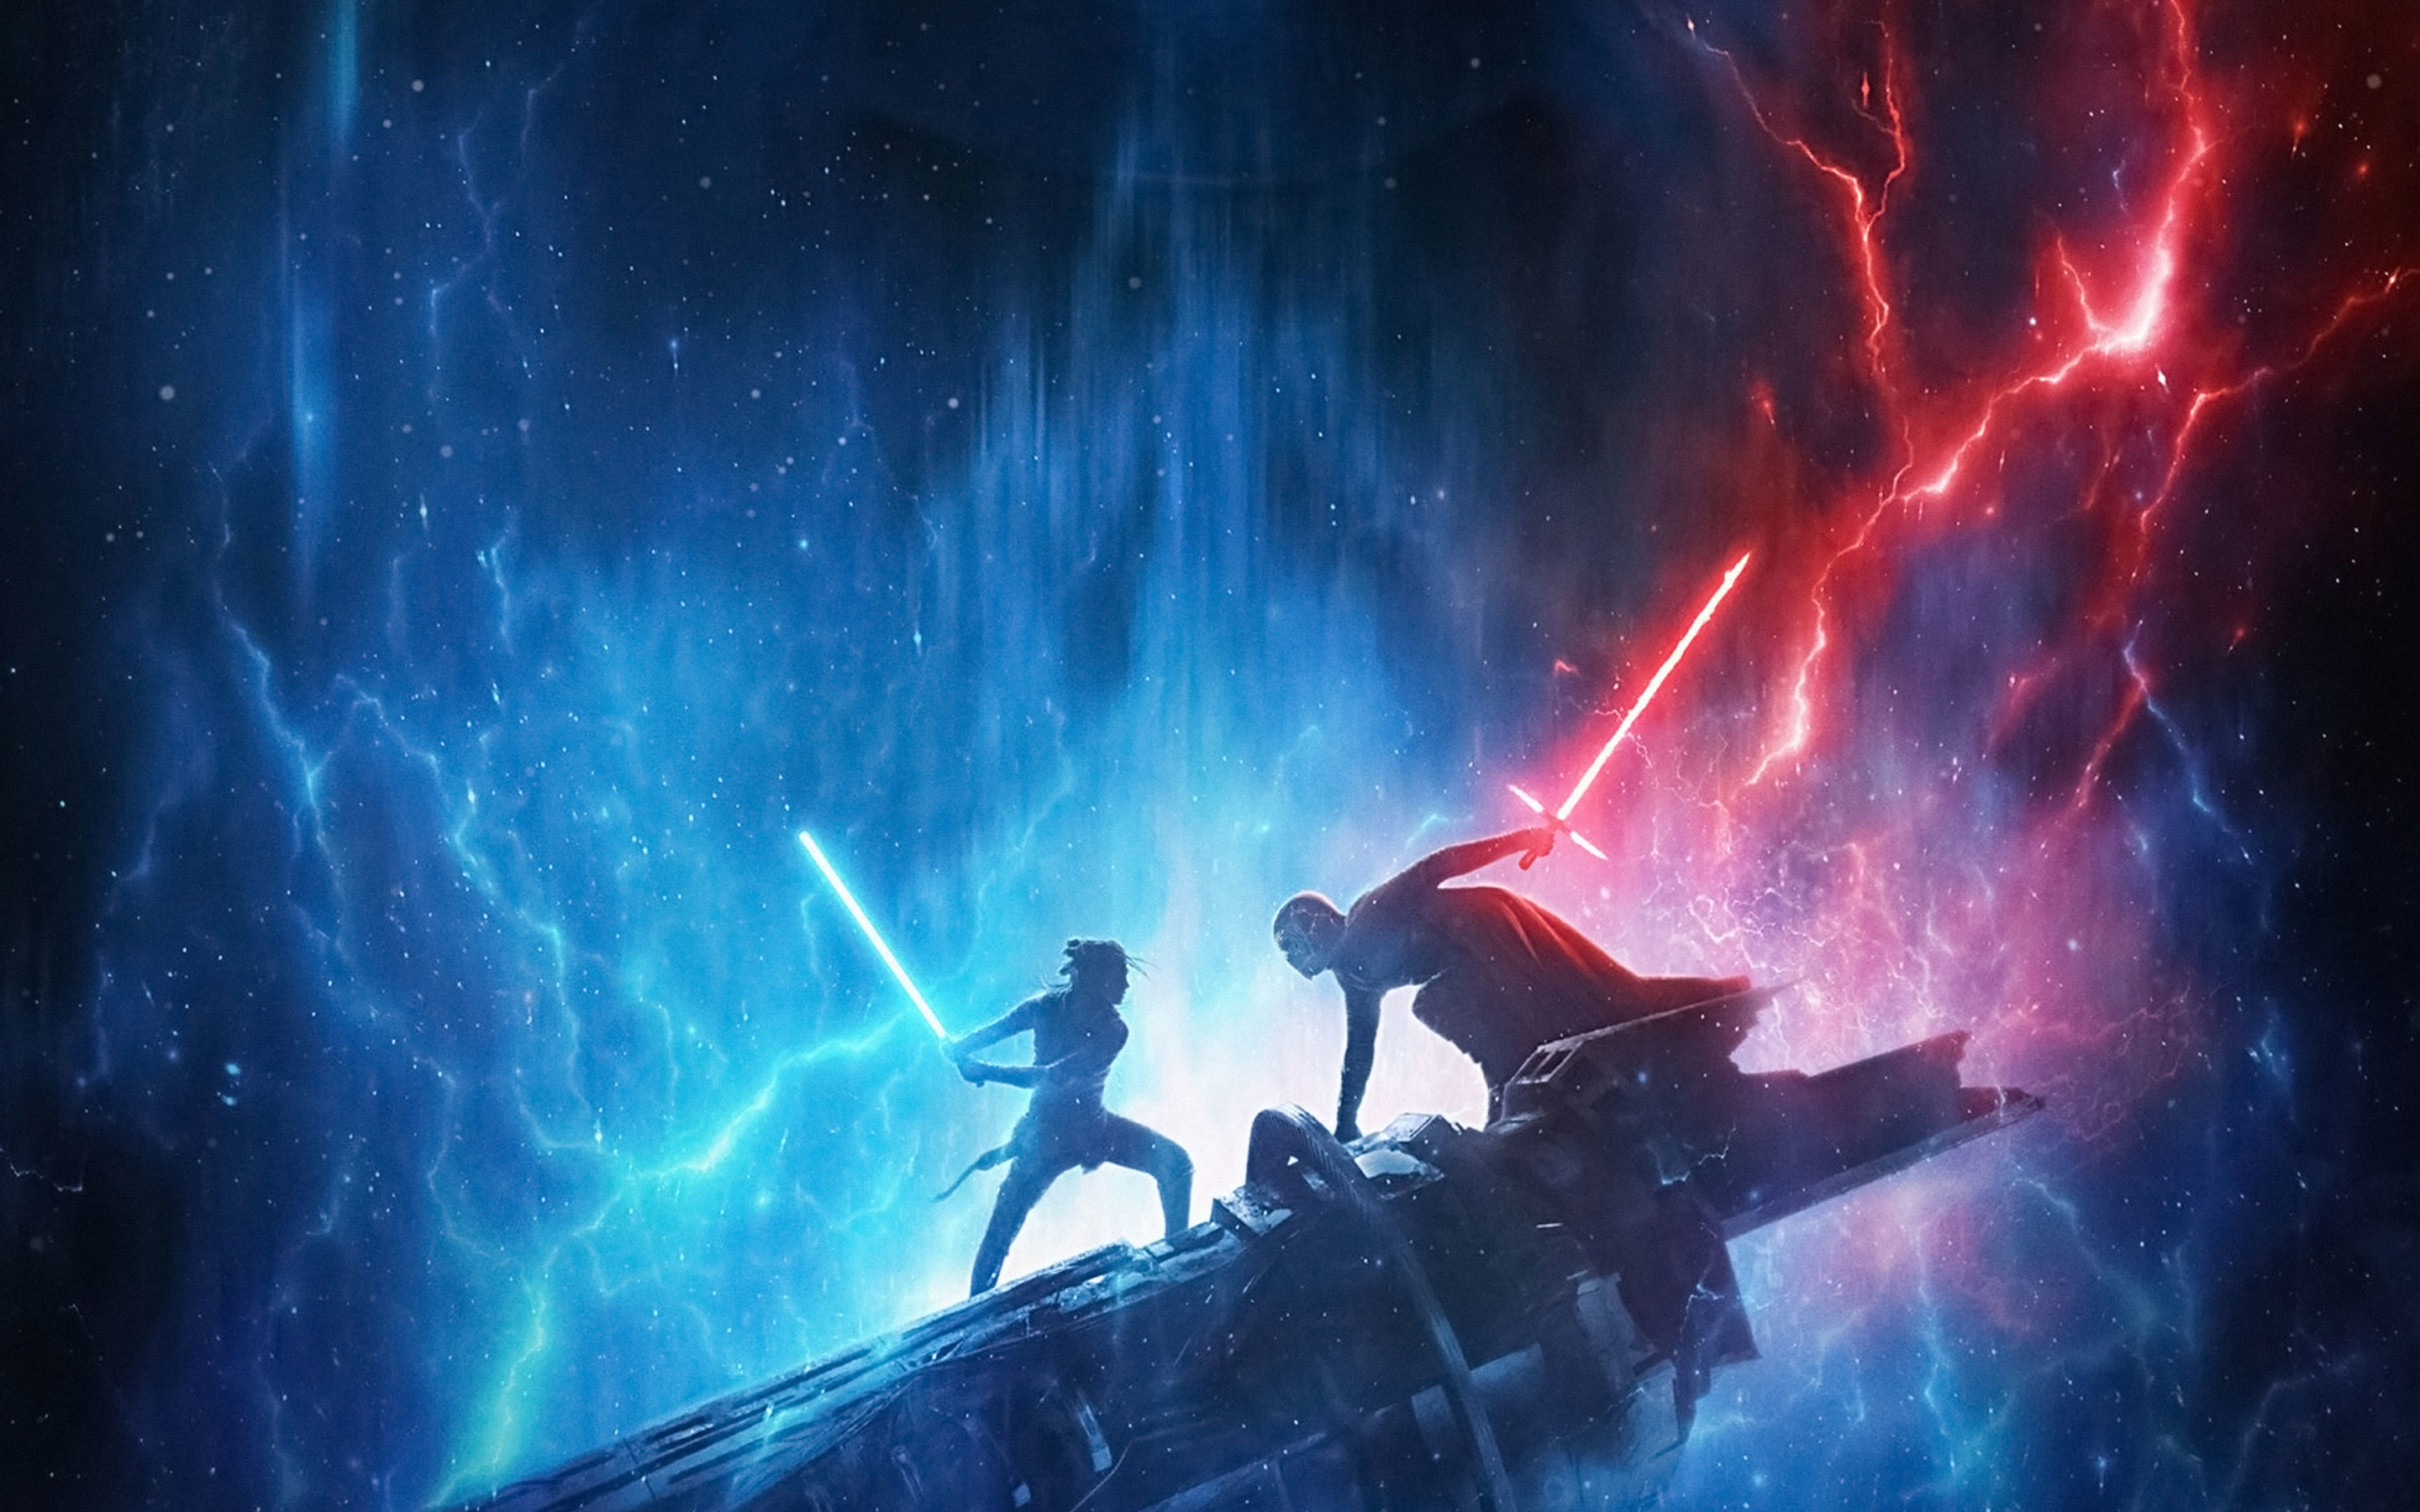 2880x1800 Star Wars The Rise Of Skywalker Macbook Pro Retina Wallpaper Hd Movies 4k Wallpapers Images Photos And Background